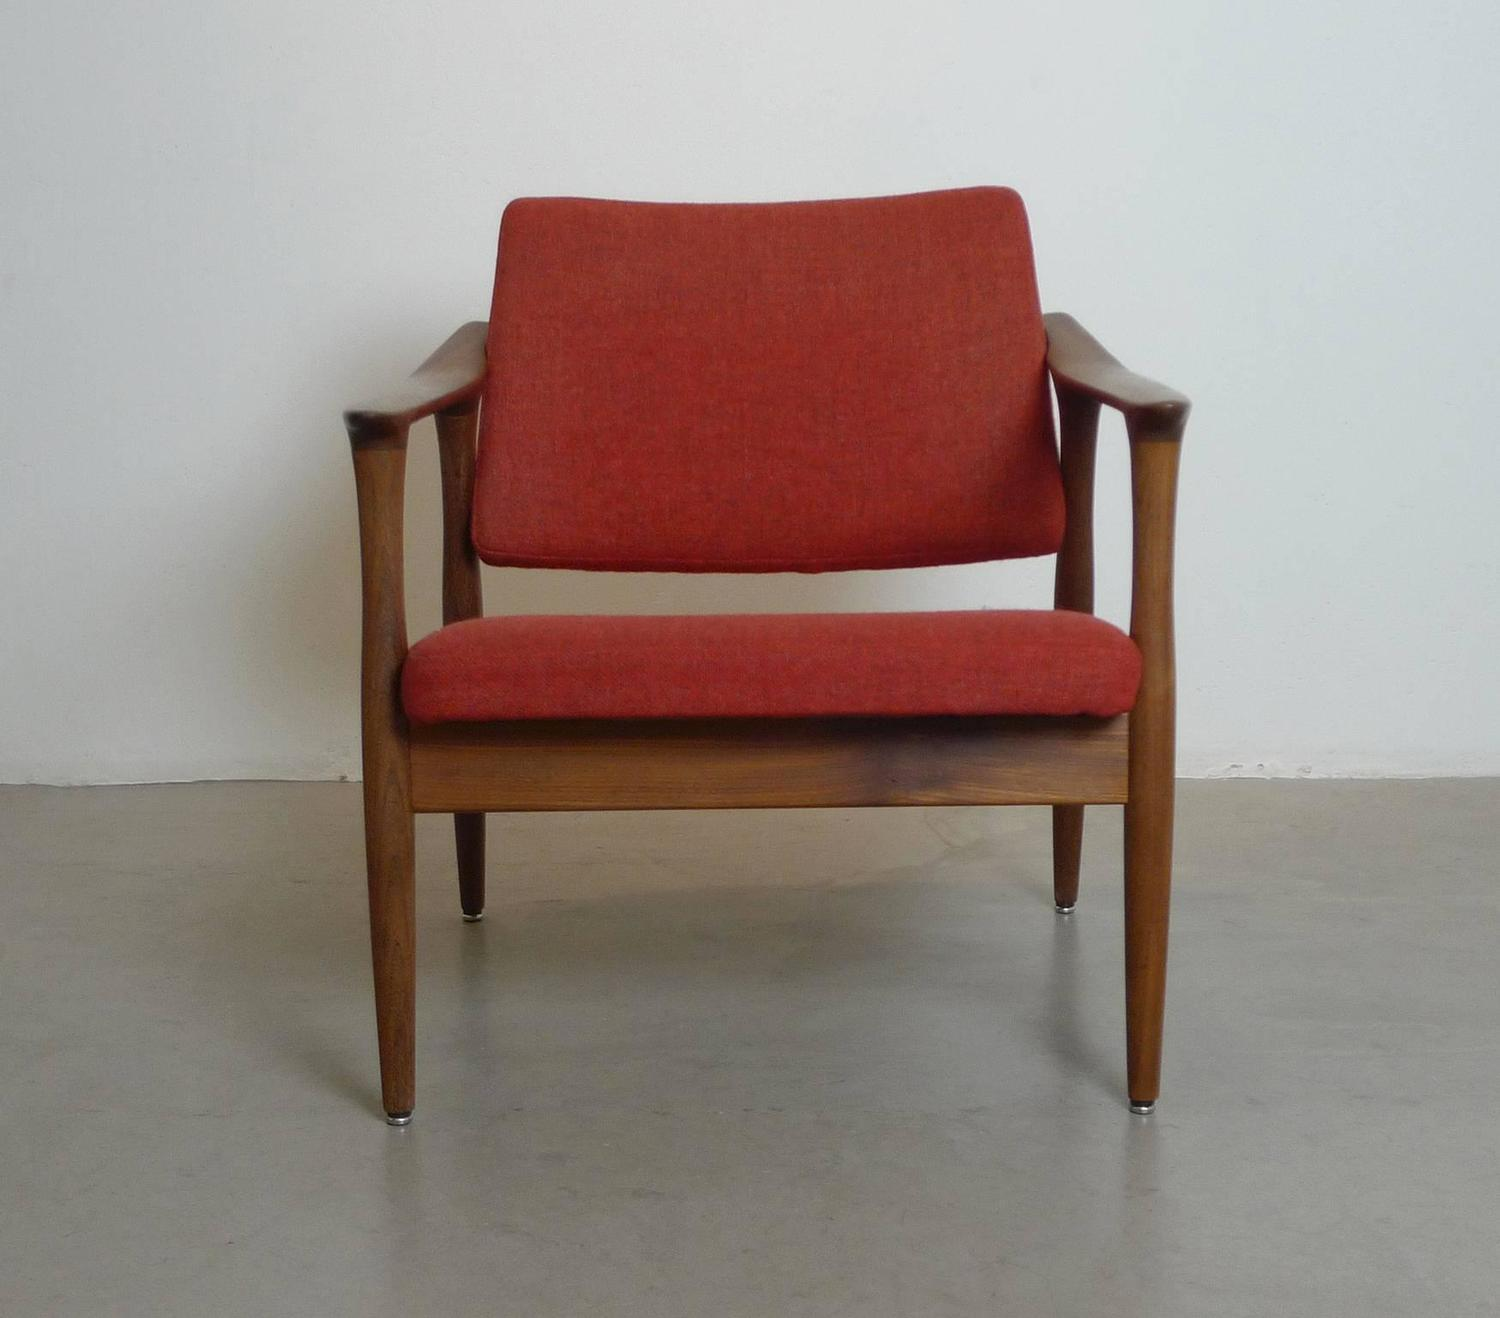 ... Chairs by Torbj?rn Afdal for Sandvik Mobler, Norway, 1950s at 1stdibs